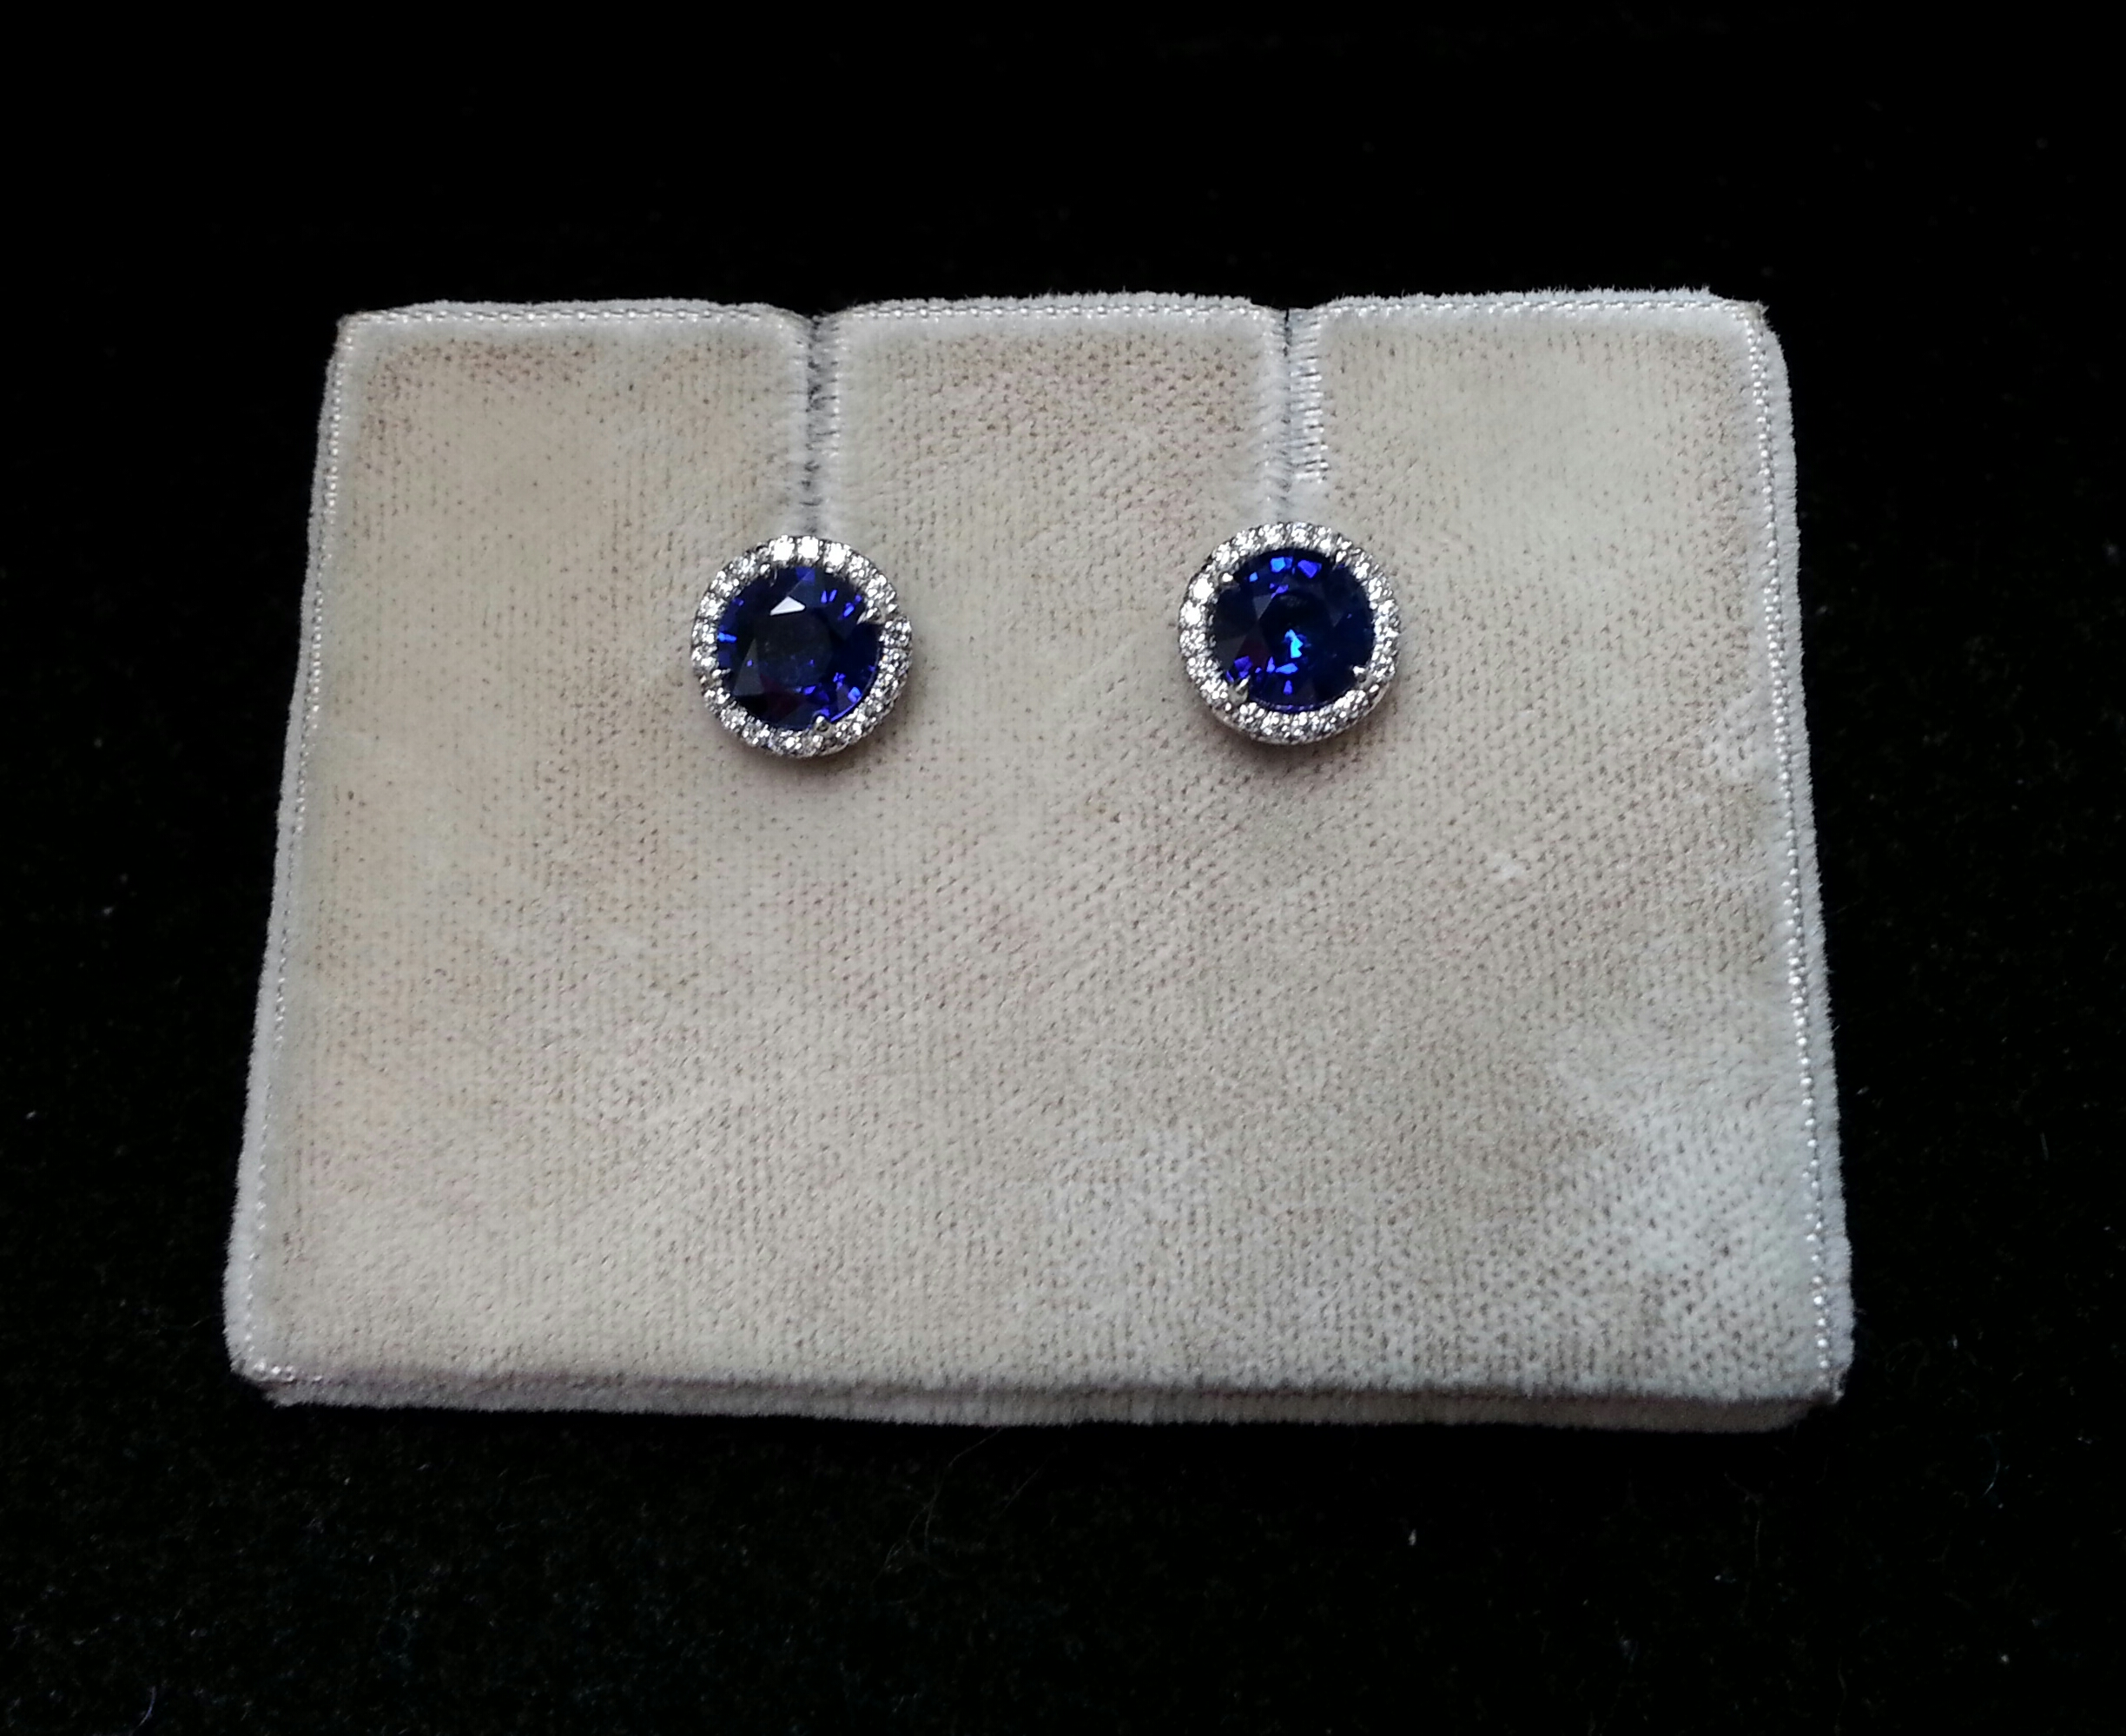 Blue Sapphire Earrings Set In Platinum With Small Diamond Halos Around Sapphires Are 1 94